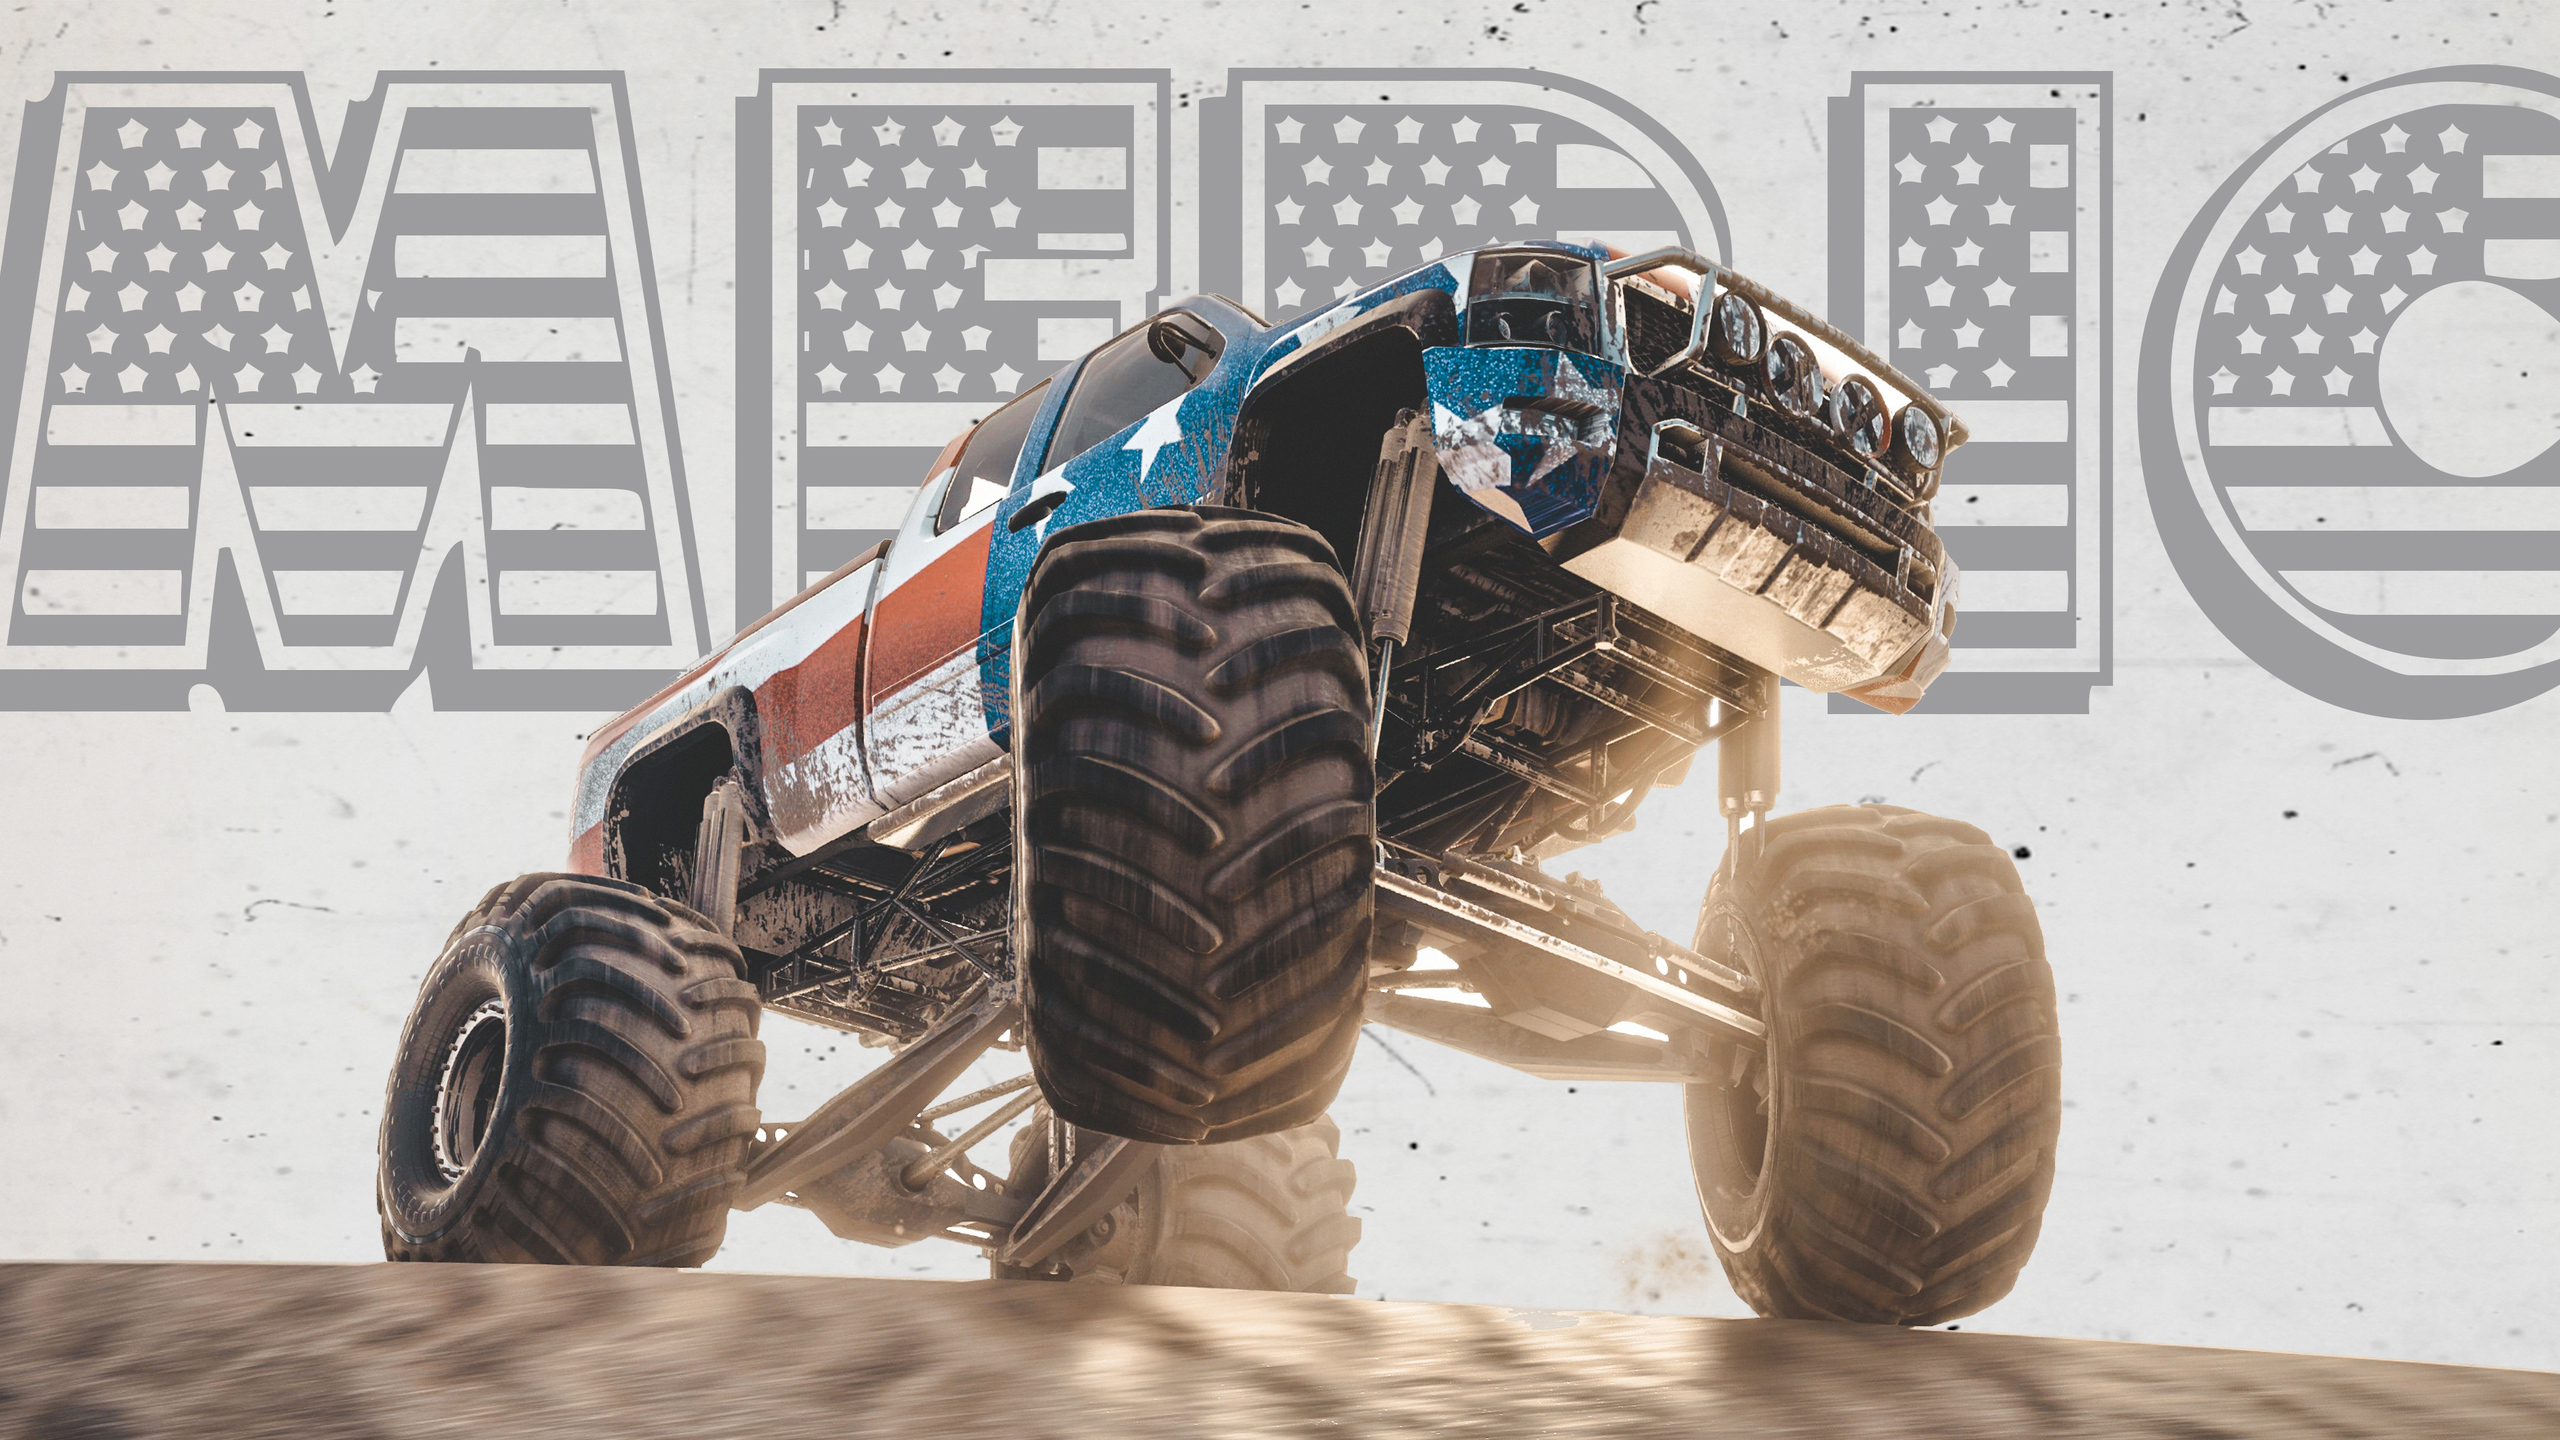 2560x1440 Monster Truck The Crew 1440p Resolution Hd 4k Wallpapers Images Backgrounds Photos And Pictures